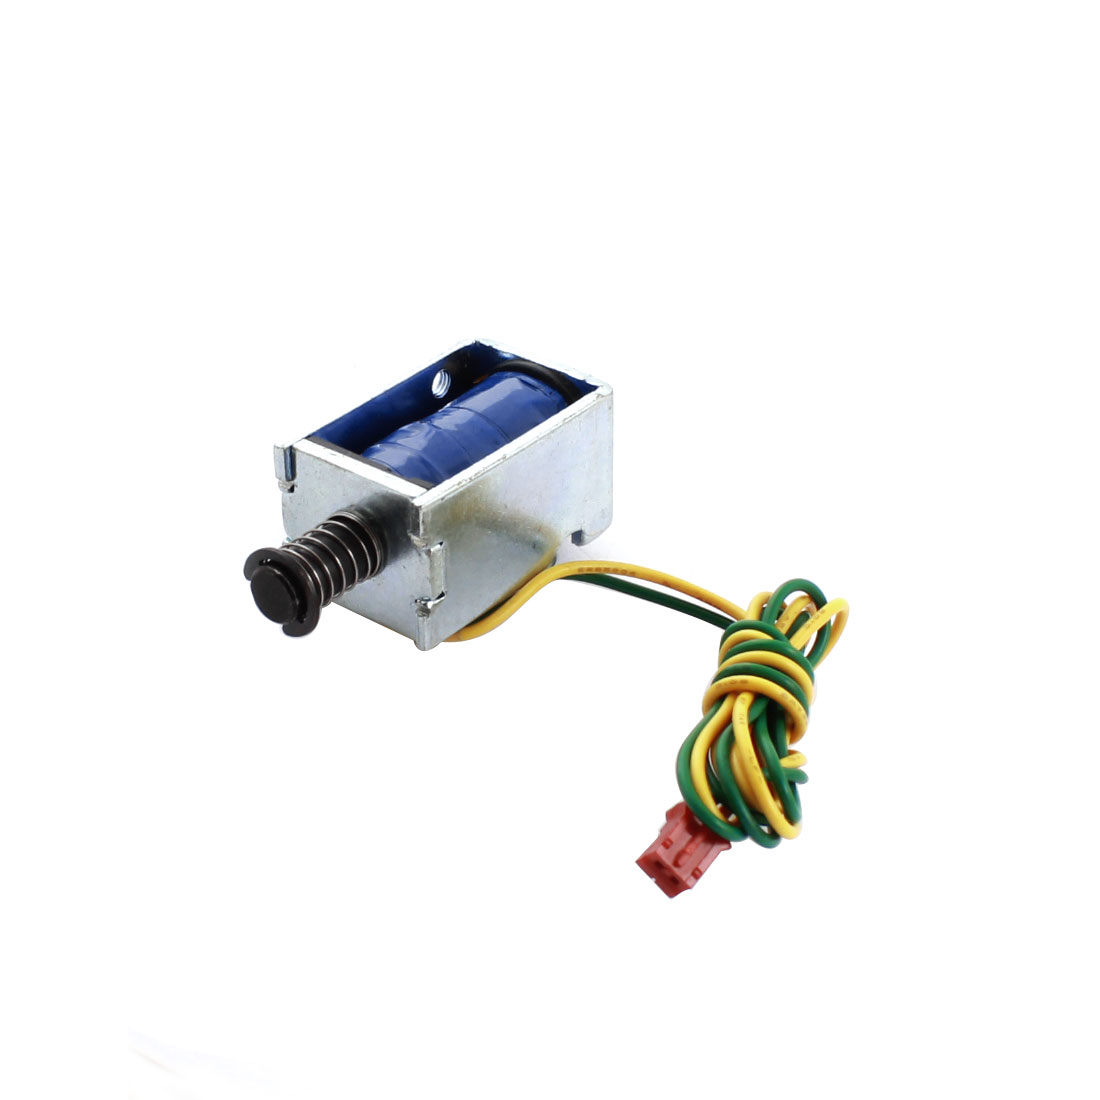 DC 15V 0.83A 12.49W 5mm 80g Open Frame Spring Plunger Linear Motion Push Pull Type Solenoid Electromagnet Actuator